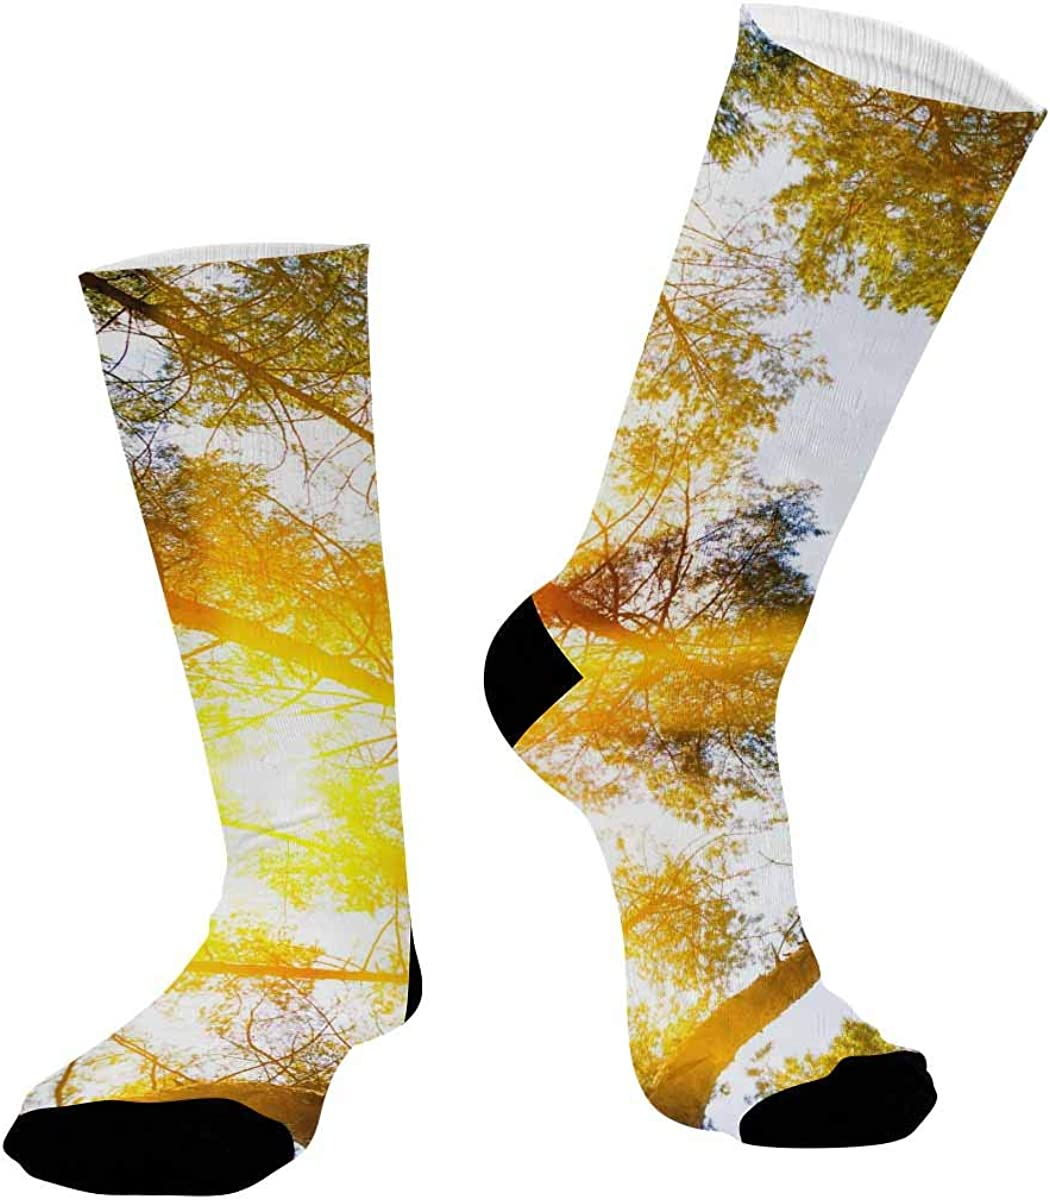 INTERESTPRINT Breathable Sublimated Crew Socks Outdoor Athletic Socks Forest Trees